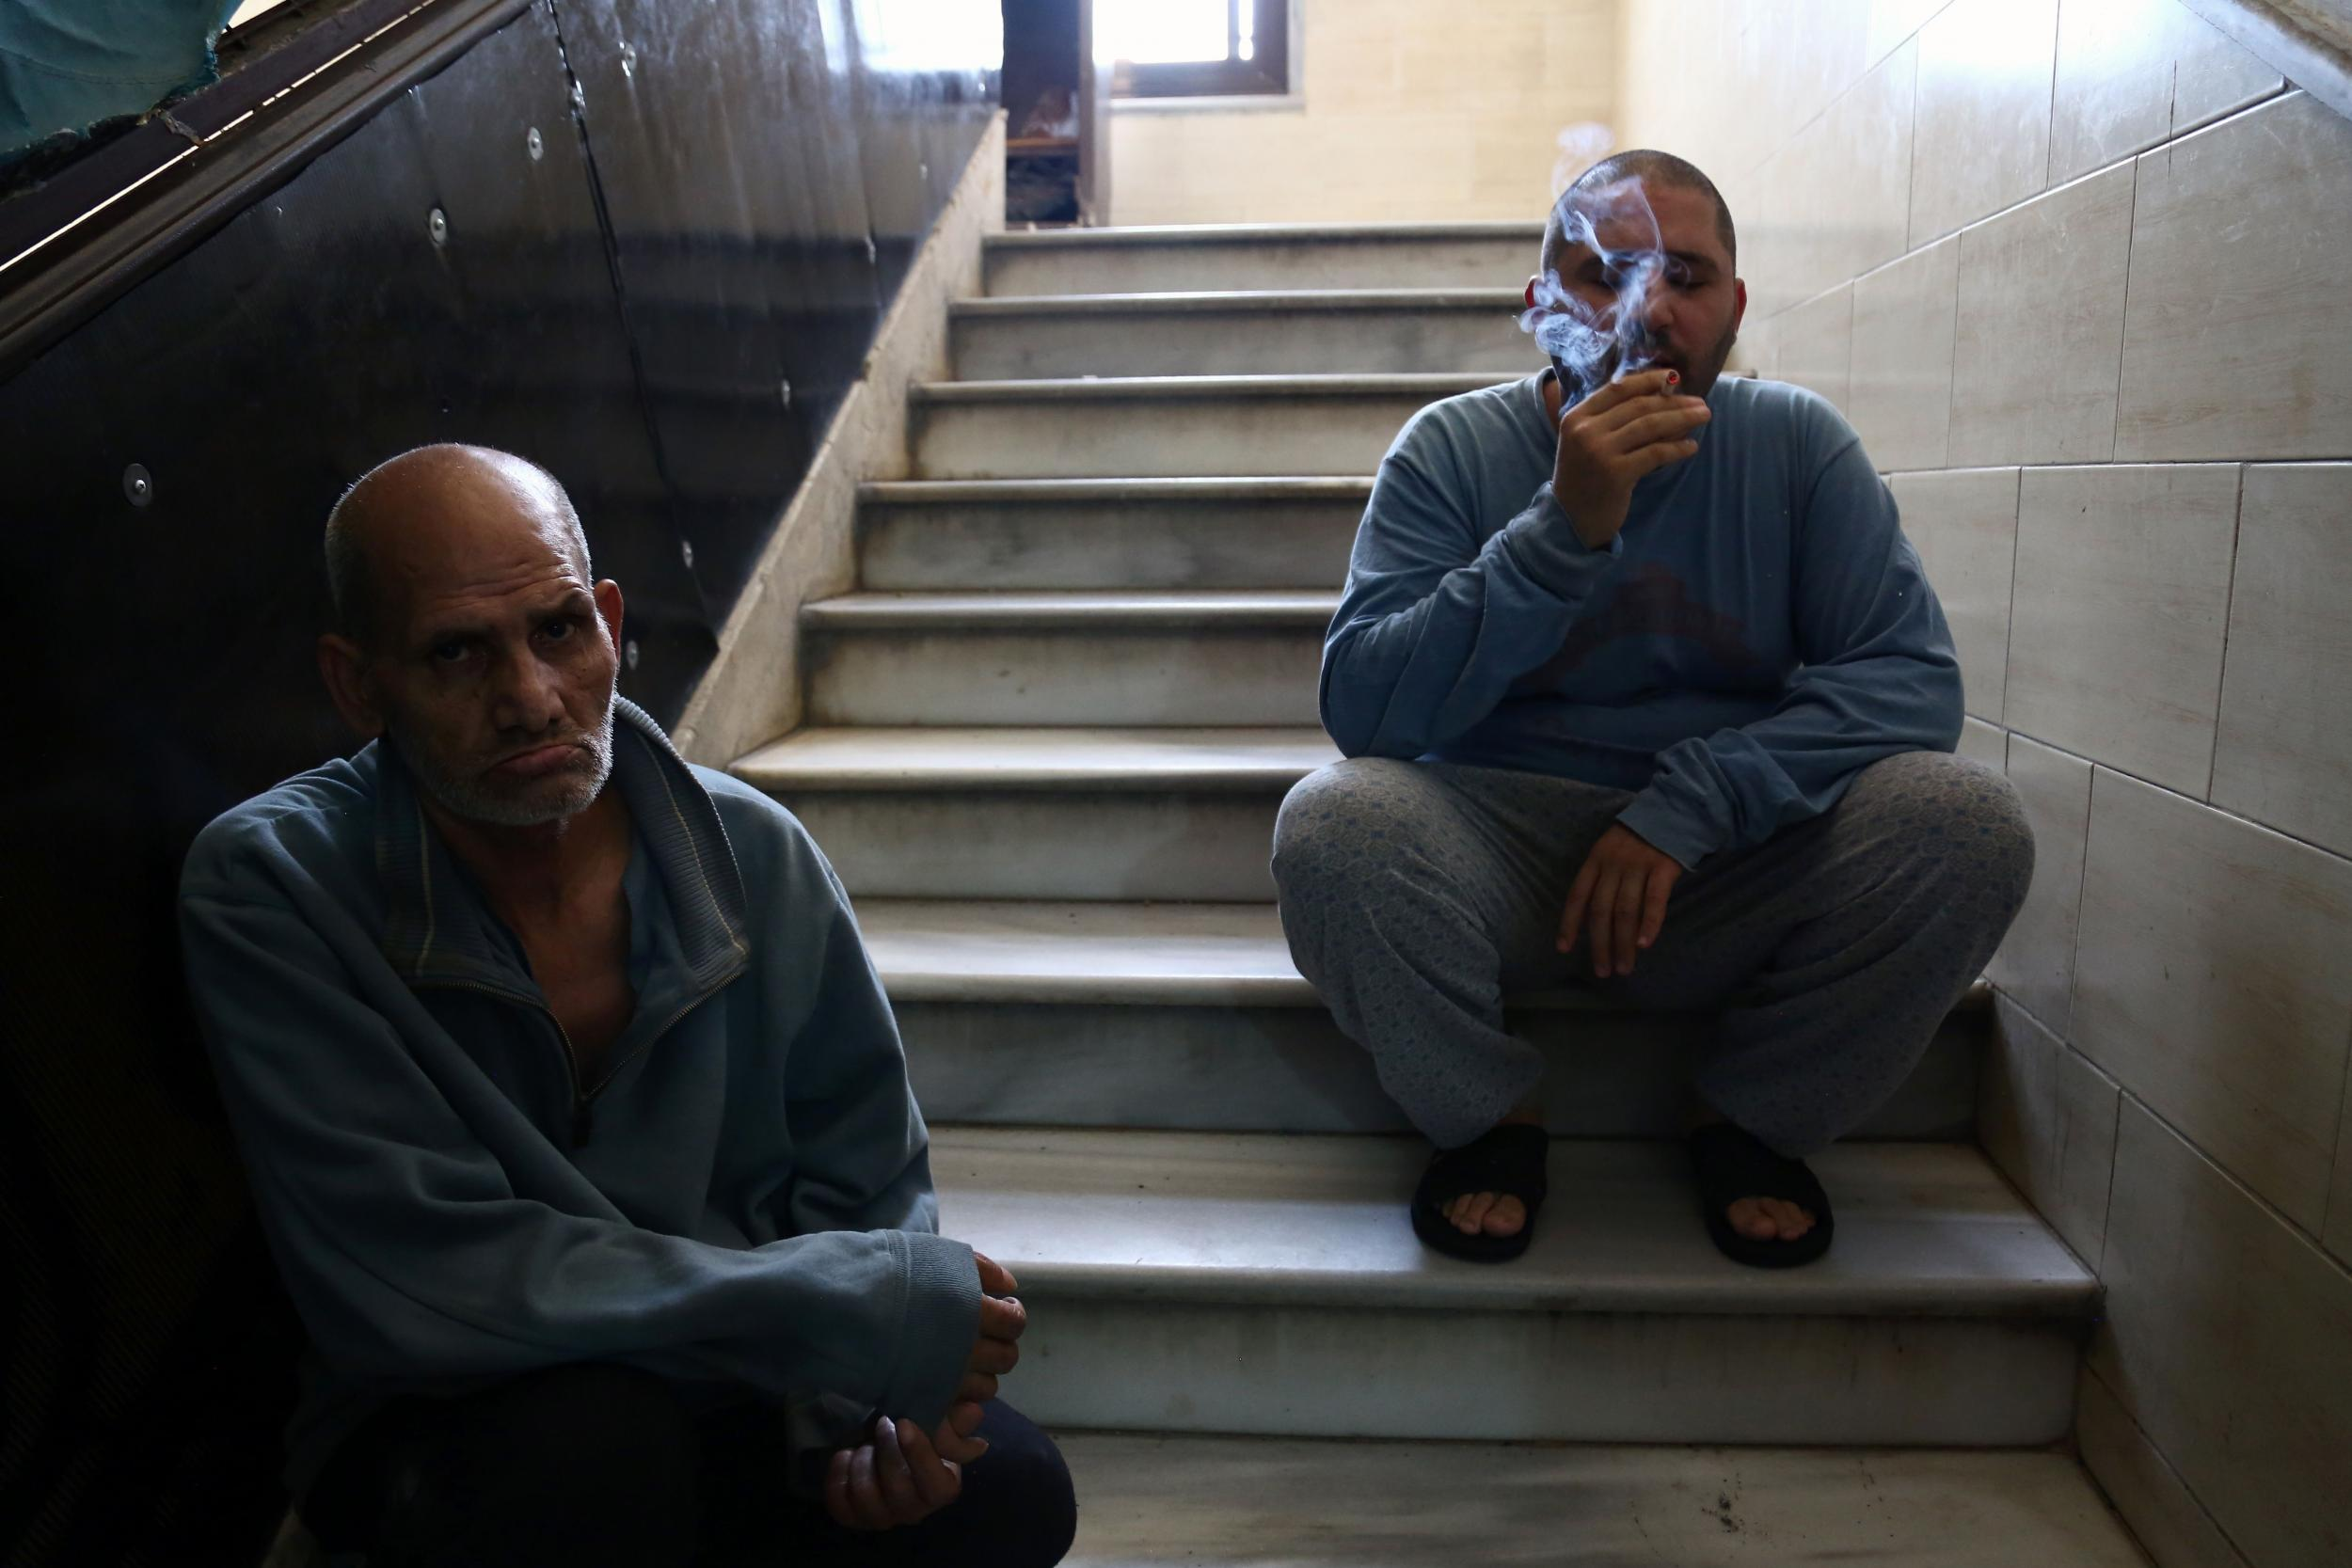 Middle East: Ten times more people are dying from murder ...